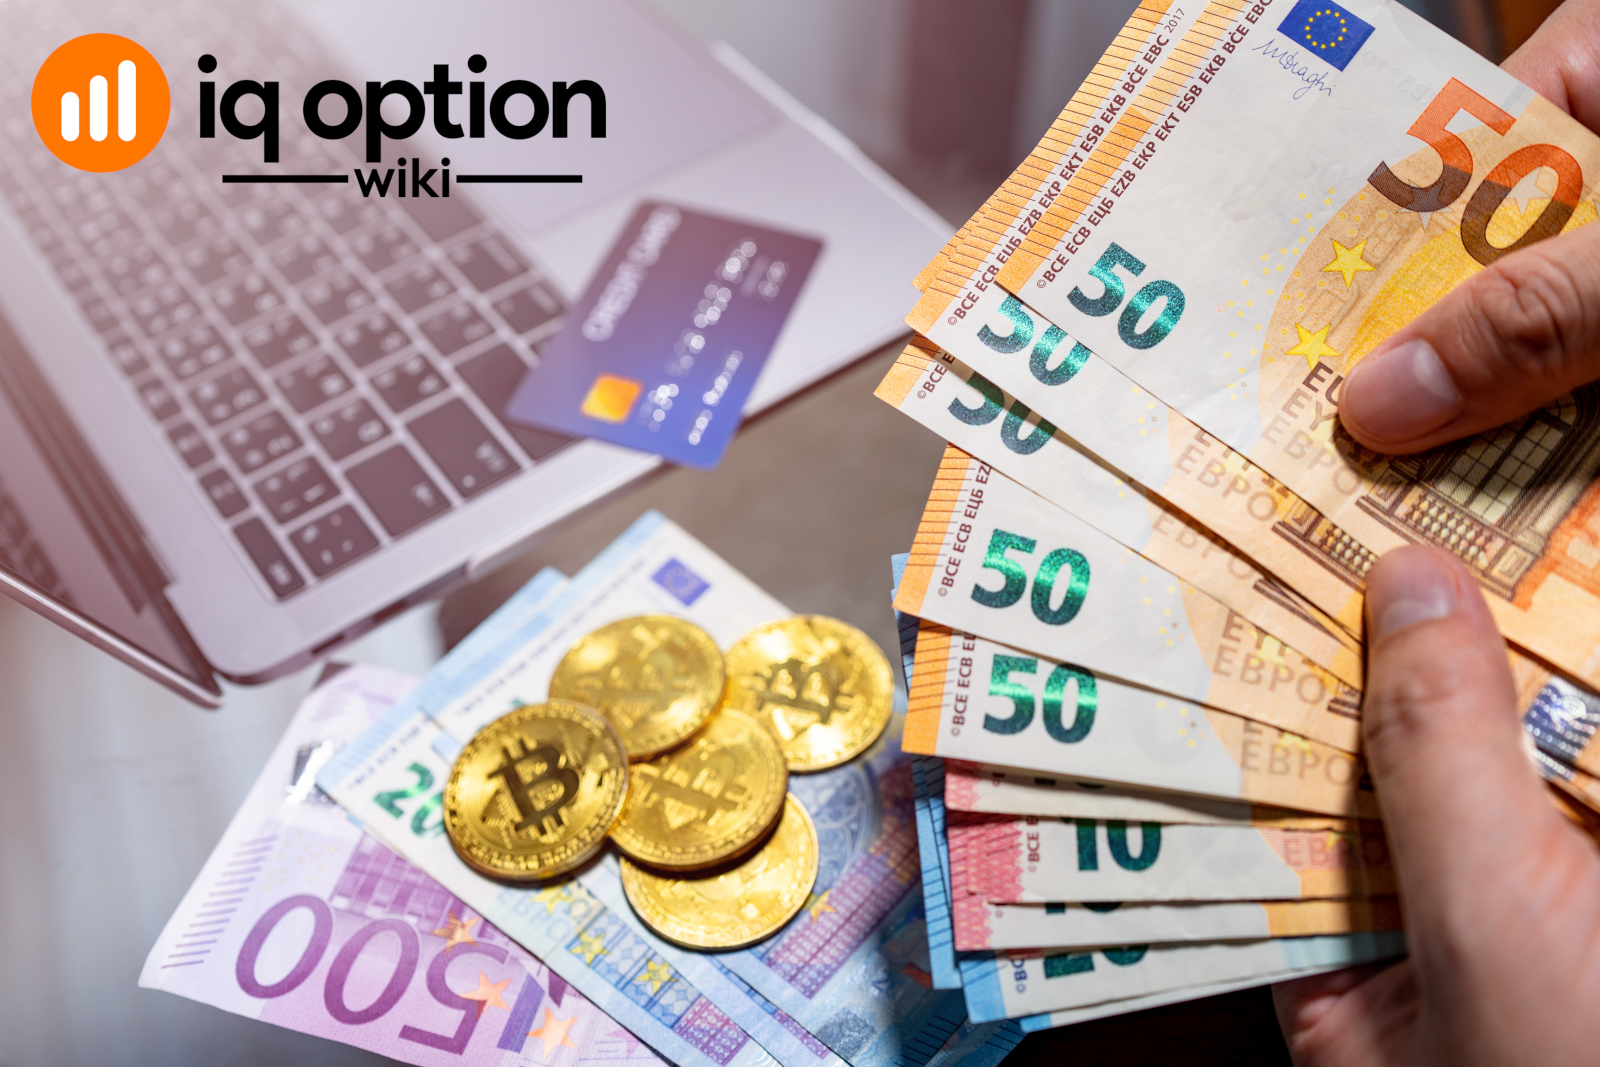 activos en iq option